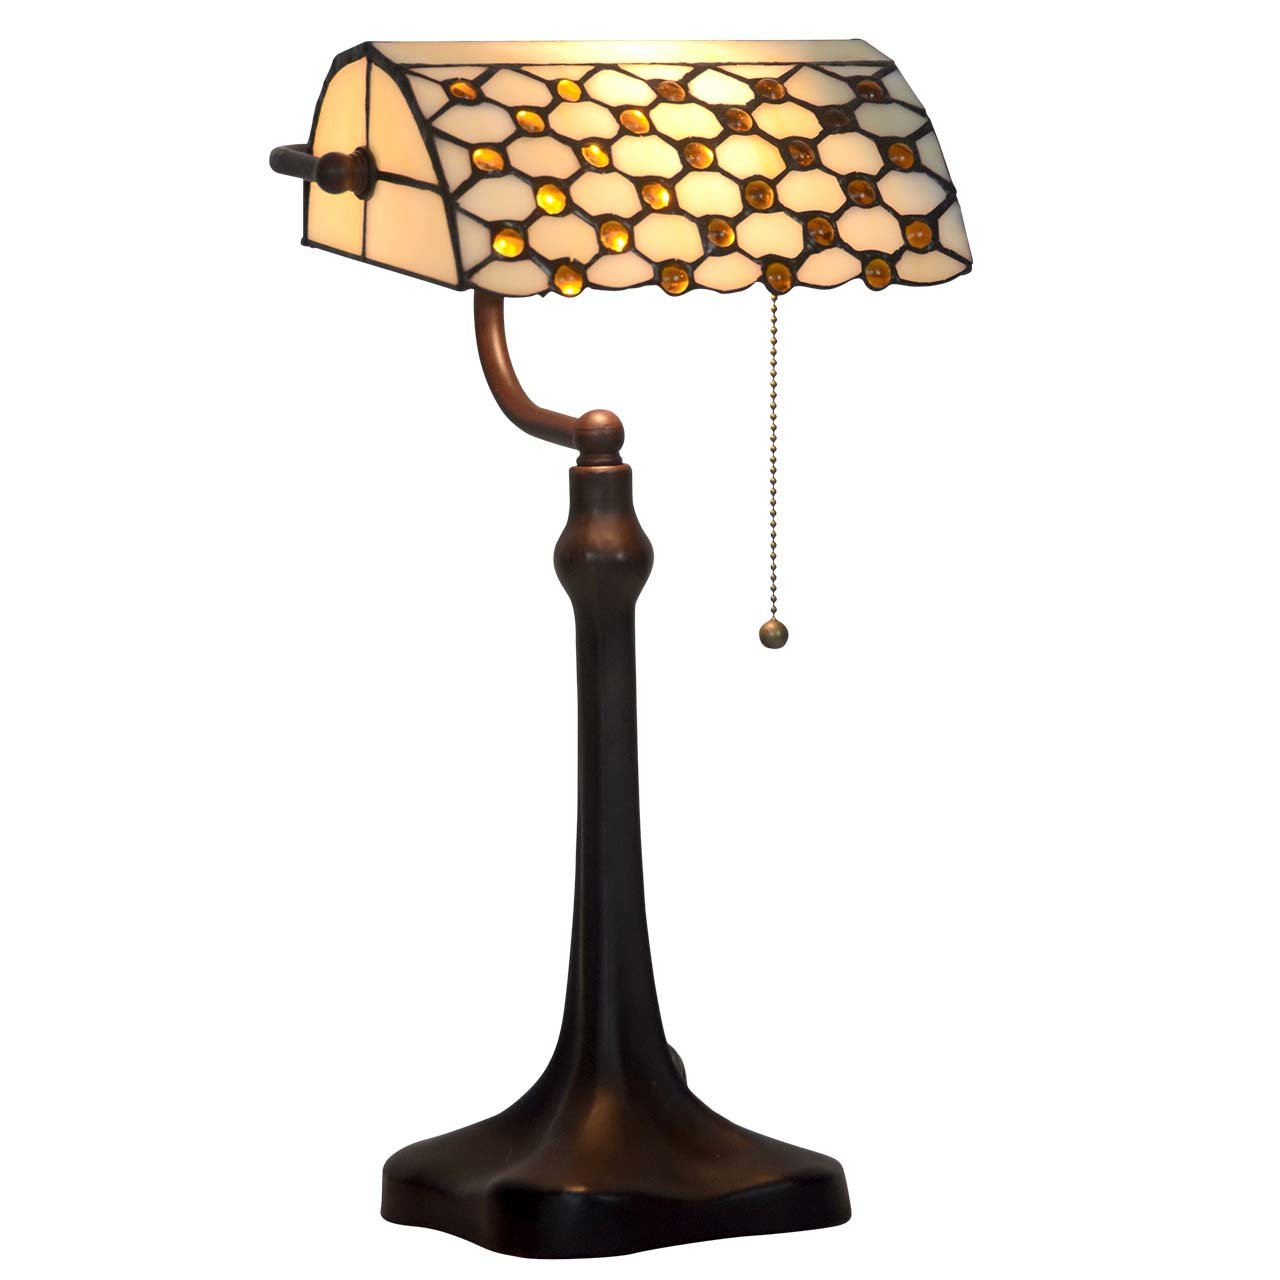 Bieye L10309 Tiffany Style Stained Glass 10-inch Jeweled Banker Table Lamp (Brown)